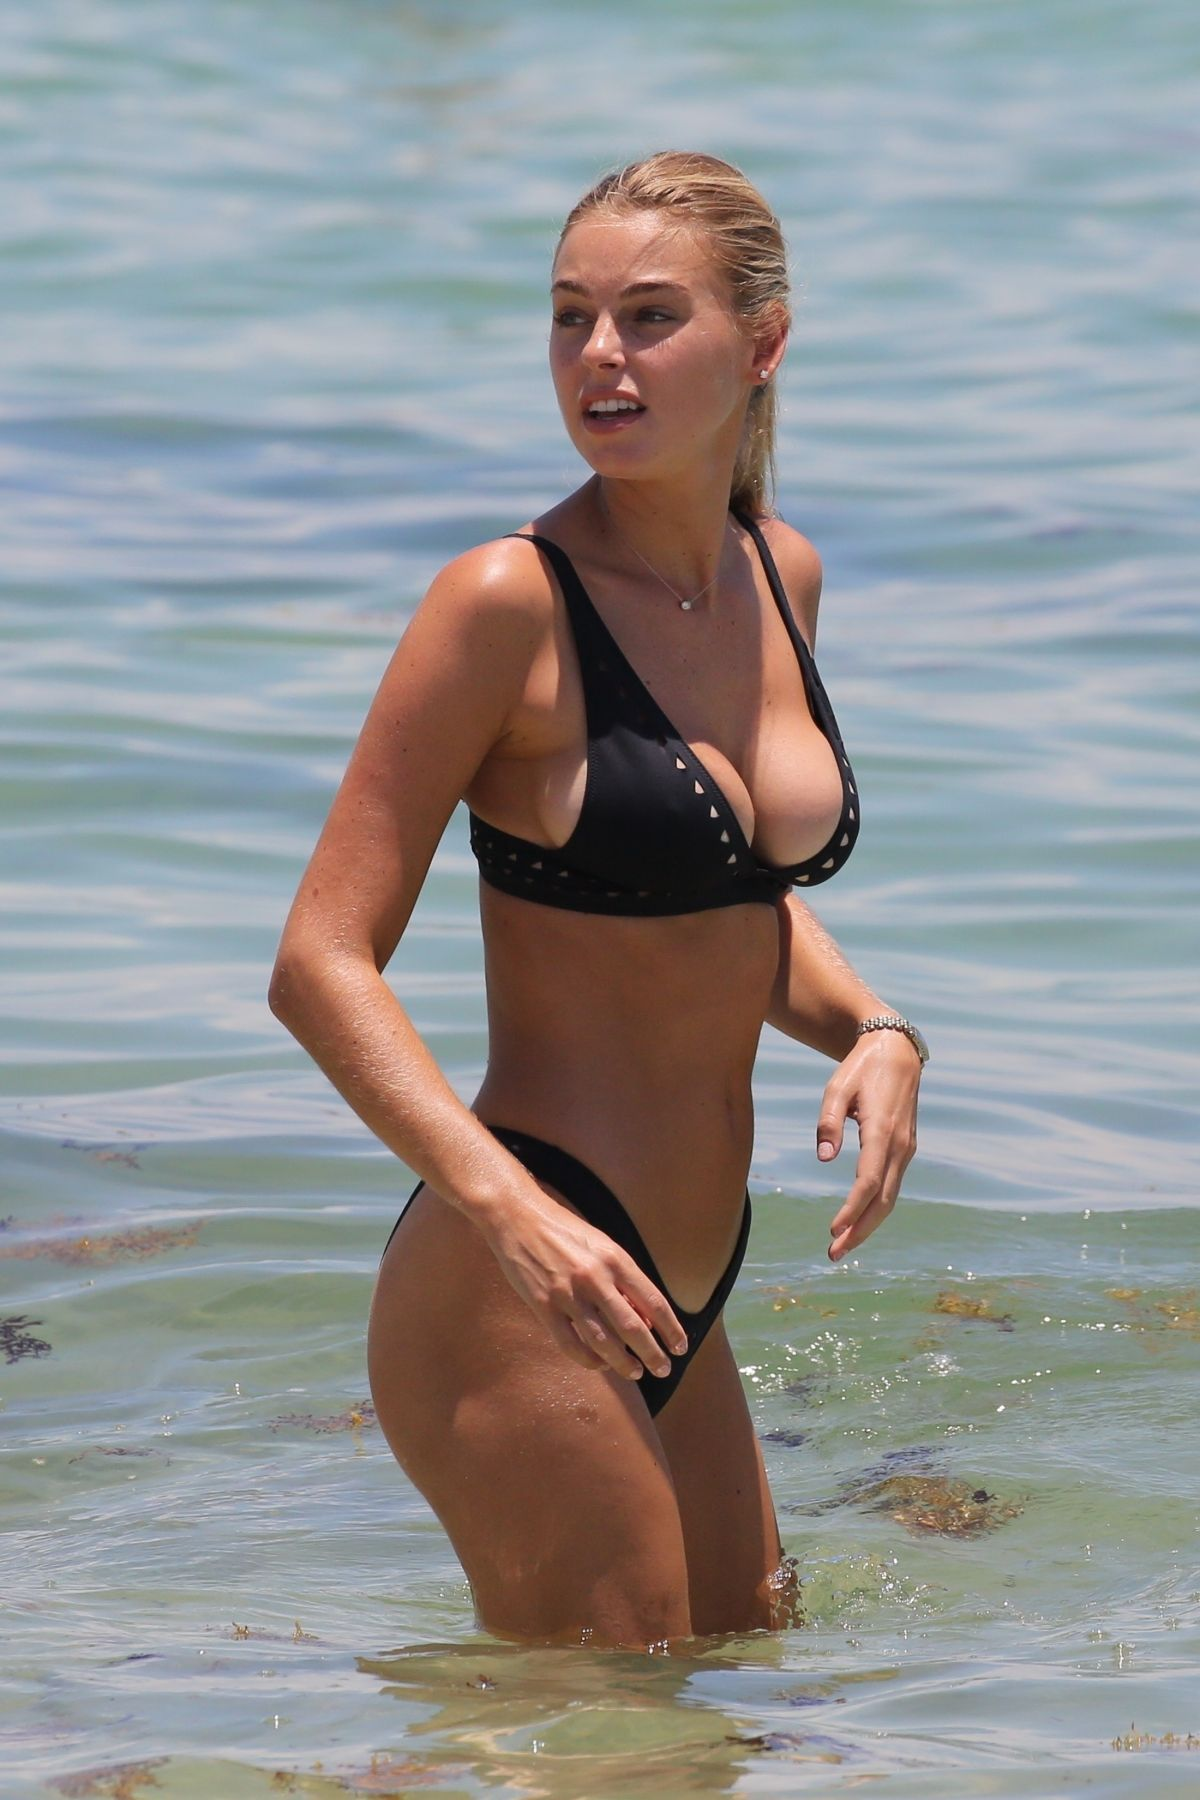 Bikini Elizabeth Turner nudes (57 foto and video), Pussy, Hot, Selfie, swimsuit 2019